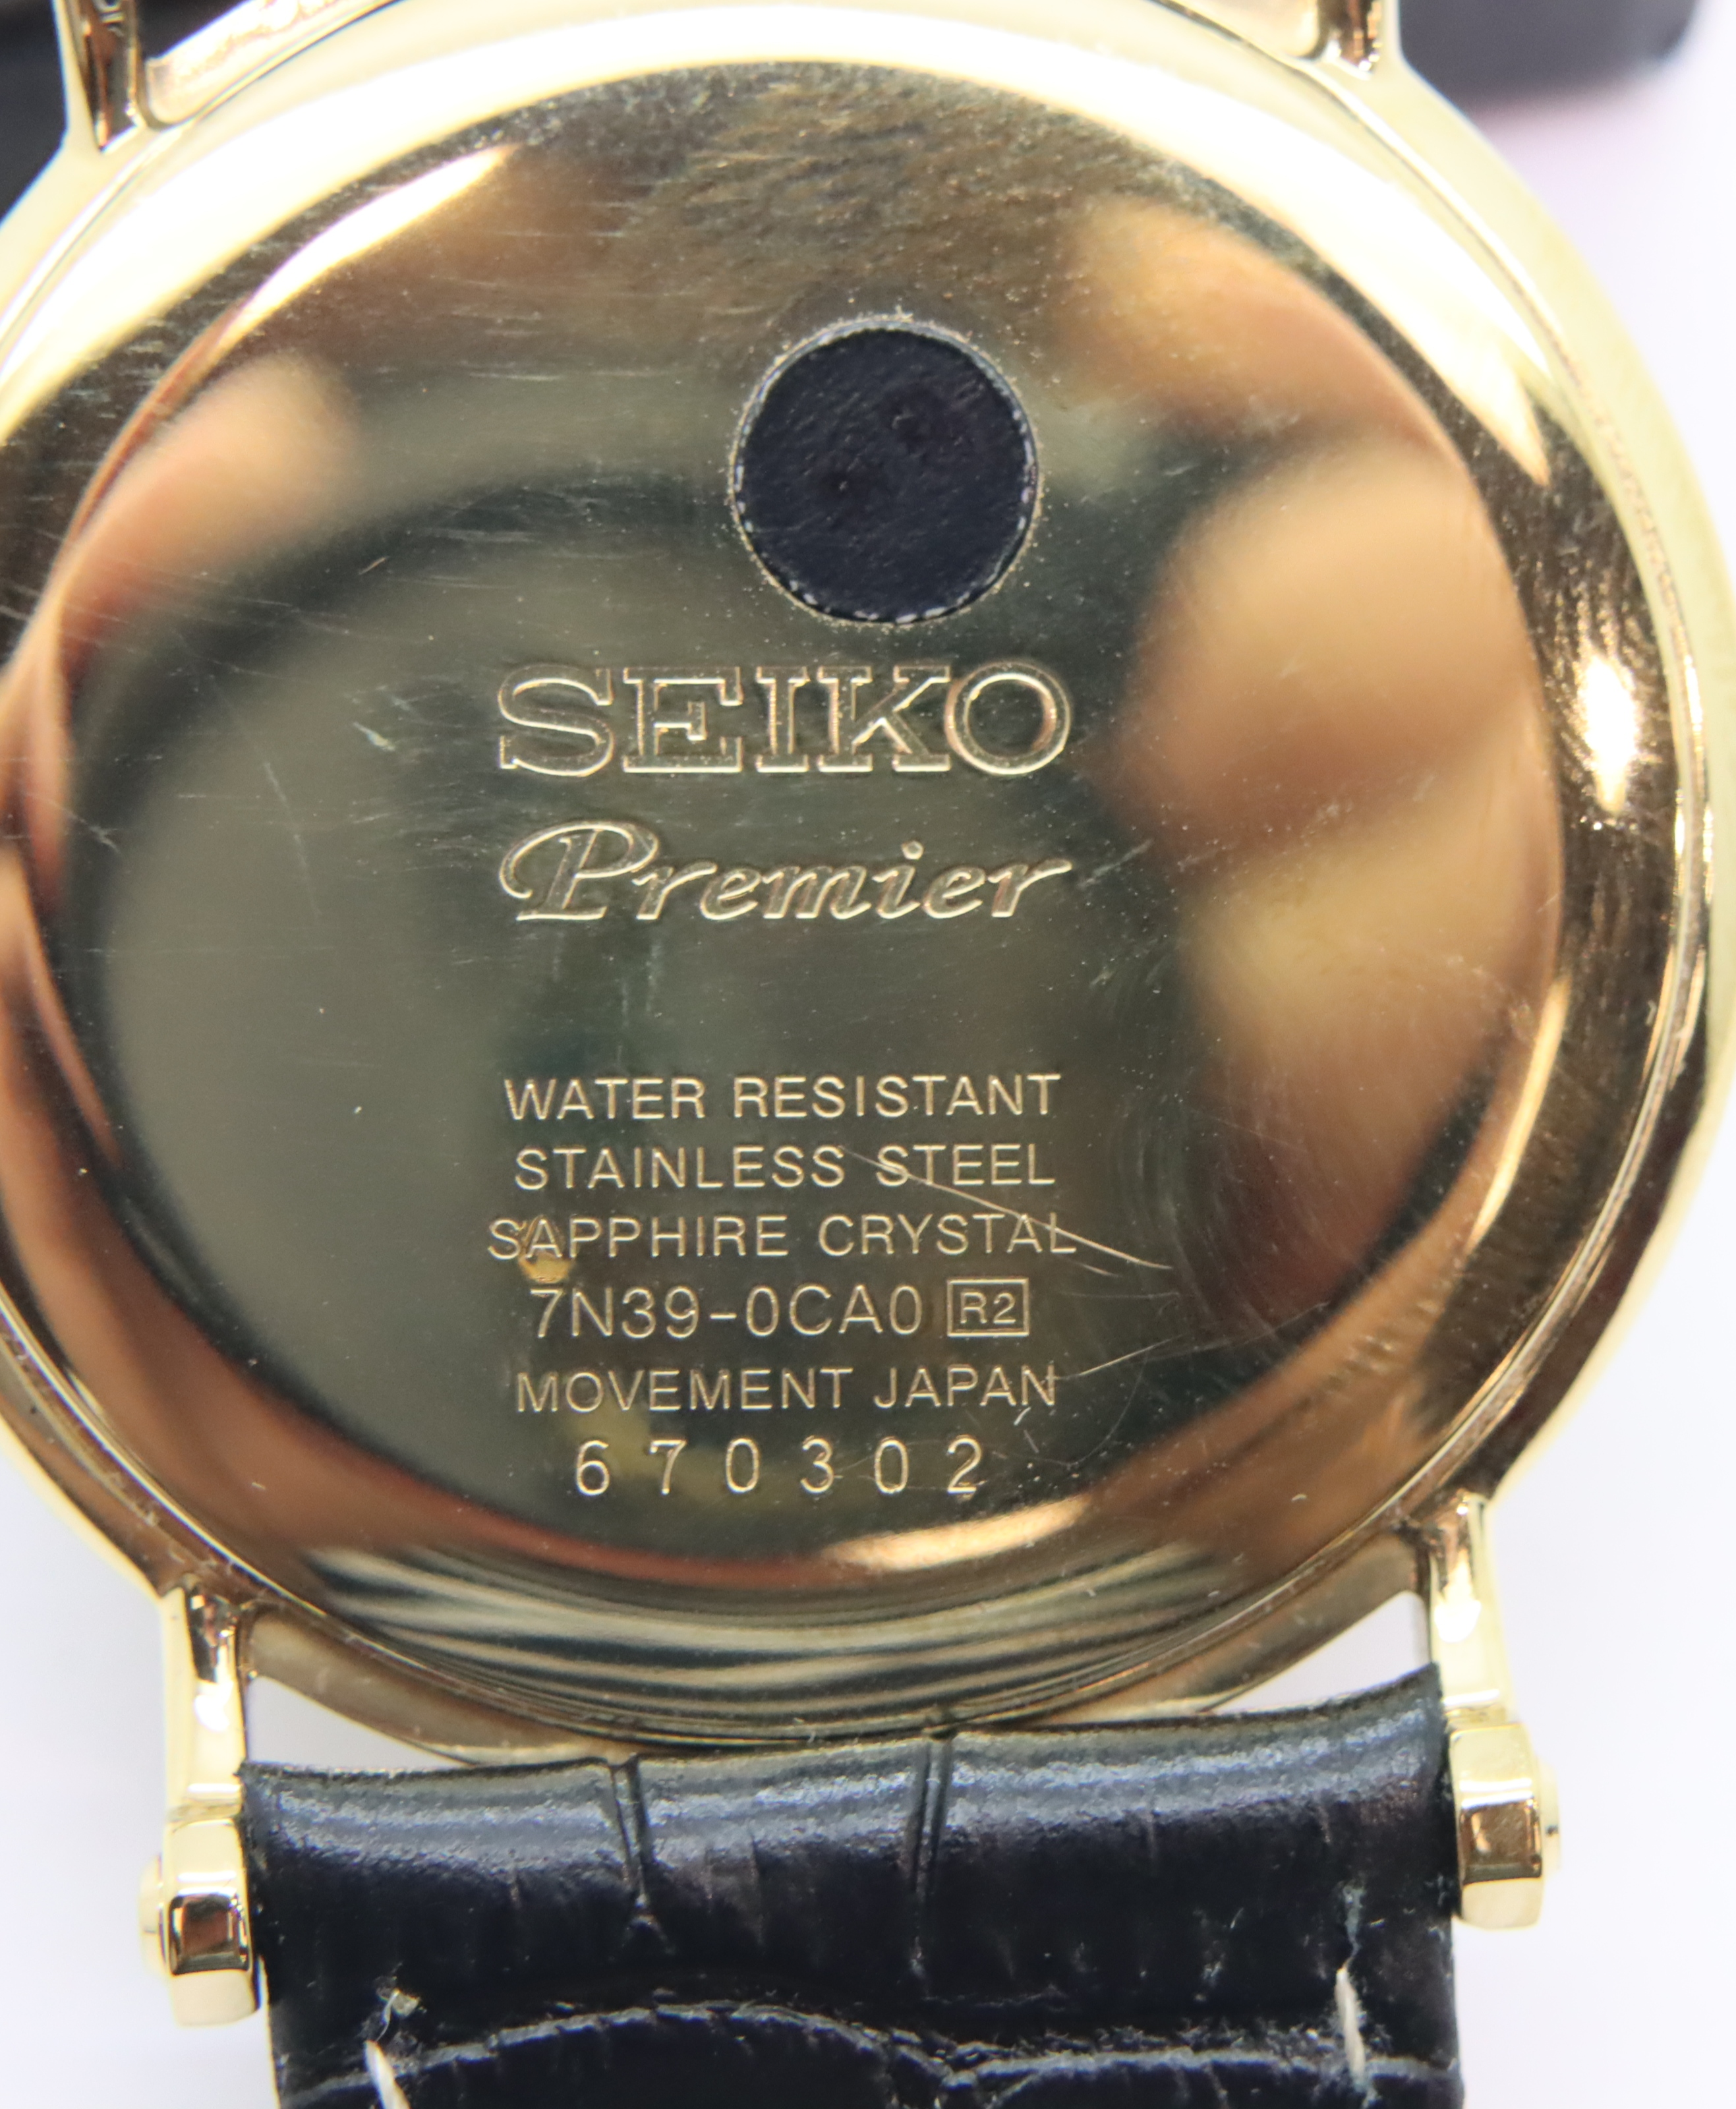 Gents Seiko calendar wristwatch, D: 4 cm. P&P Group 1 (£14+VAT for the first lot and £1+VAT for - Image 2 of 3